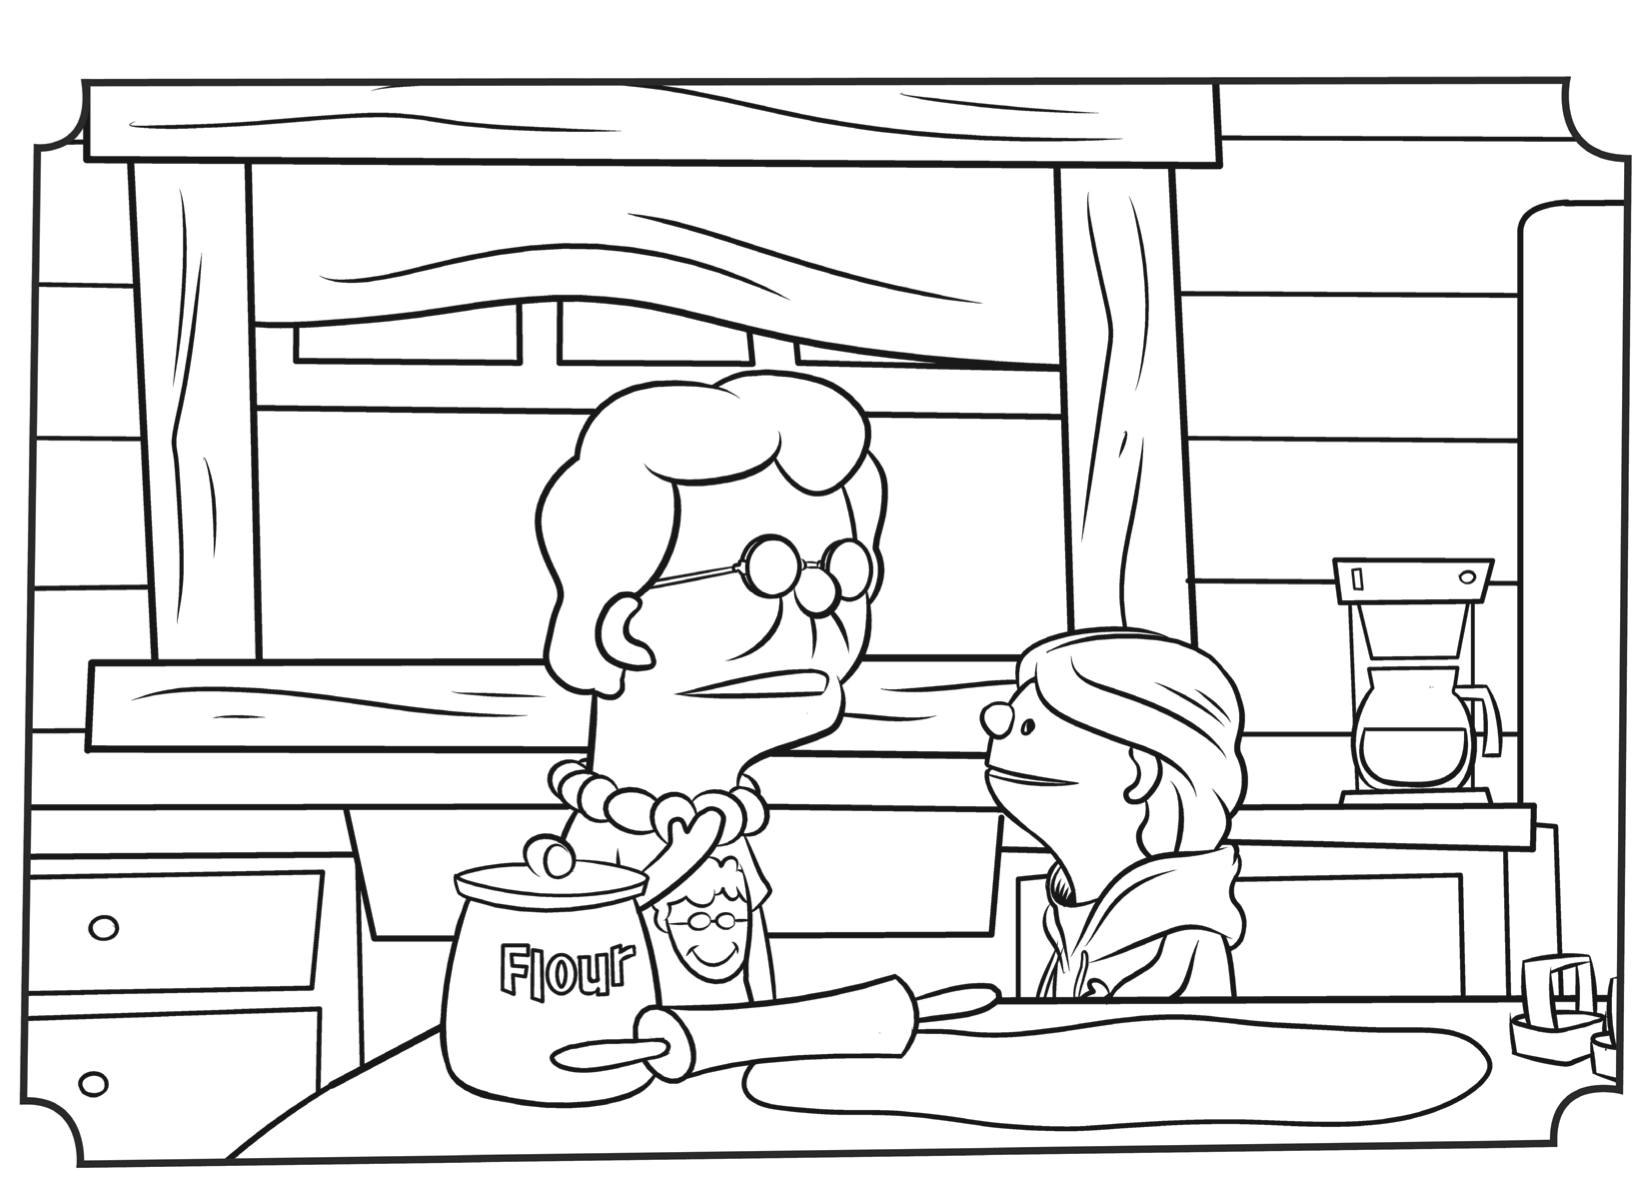 jellytelly coloring pages - photo#1